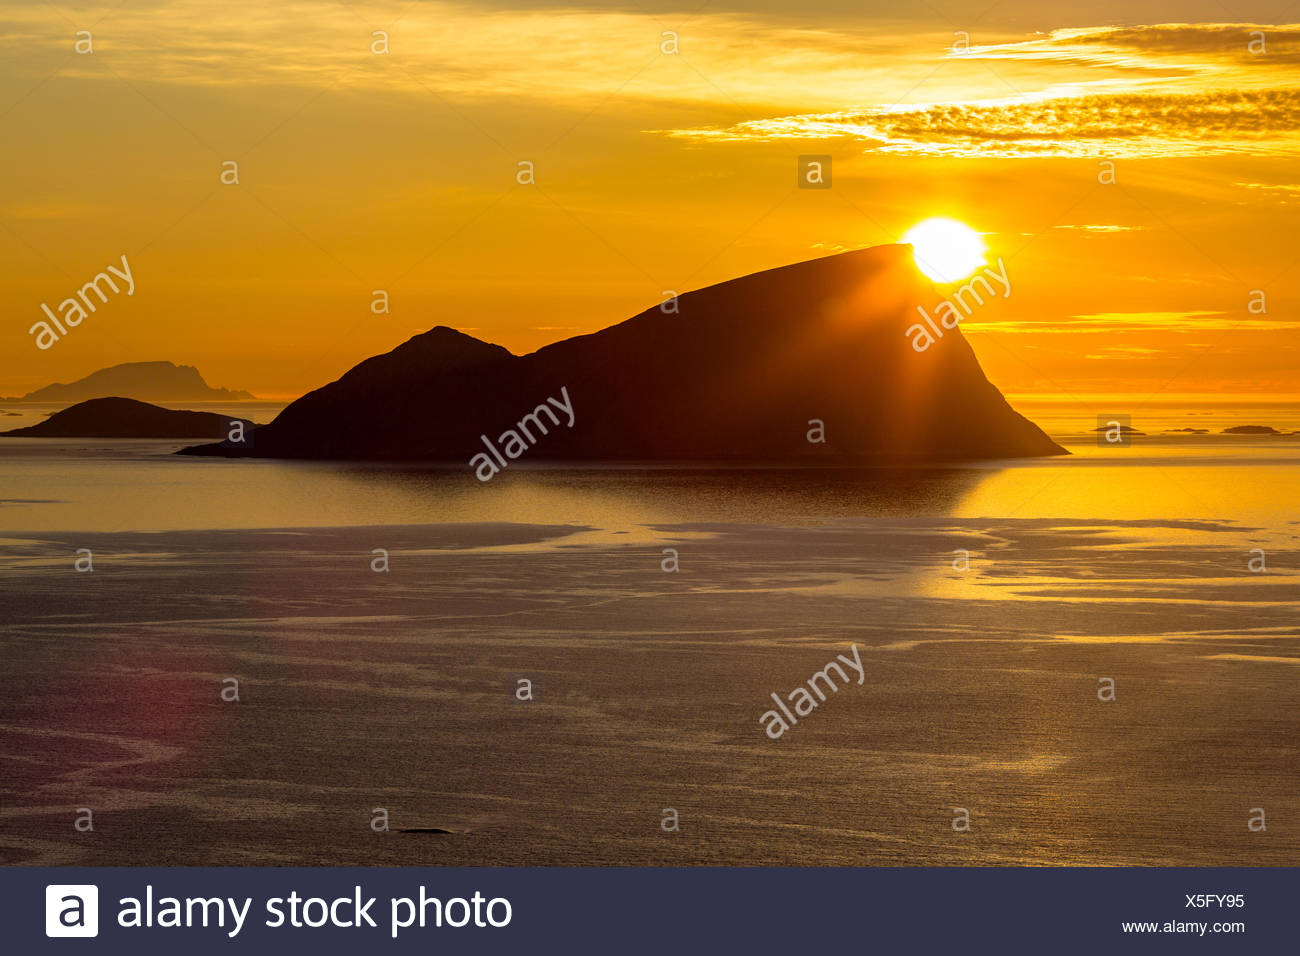 Silhouette Rock Formation At Beach Against Orange Sky - Stock Image